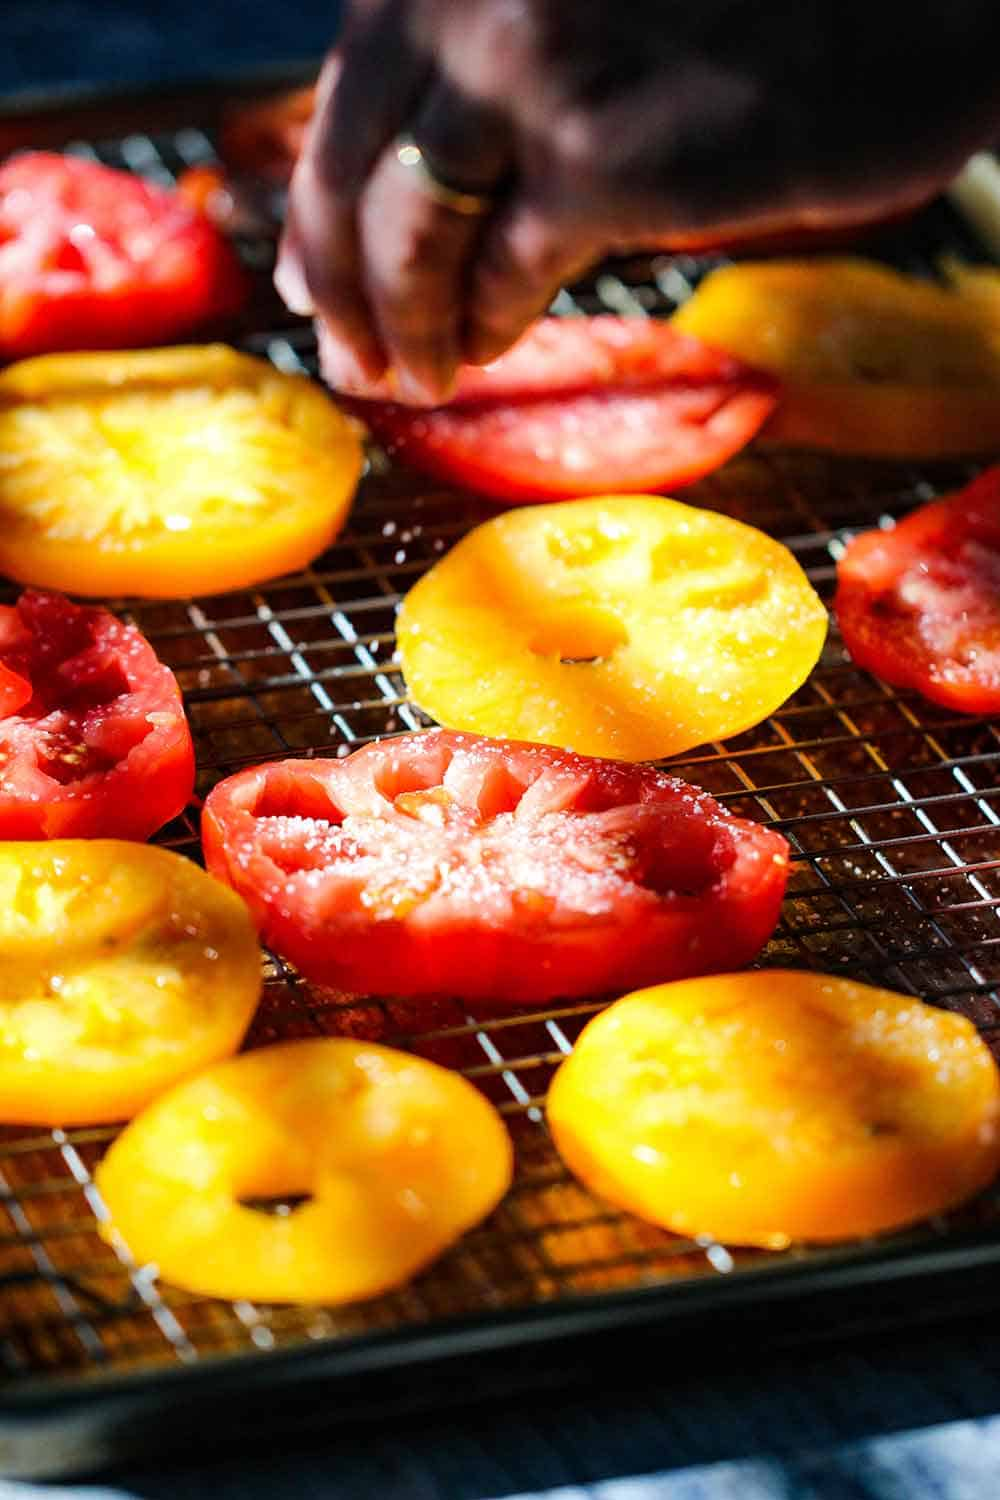 Sprinkle salt on the tomatoes to remove excess water.